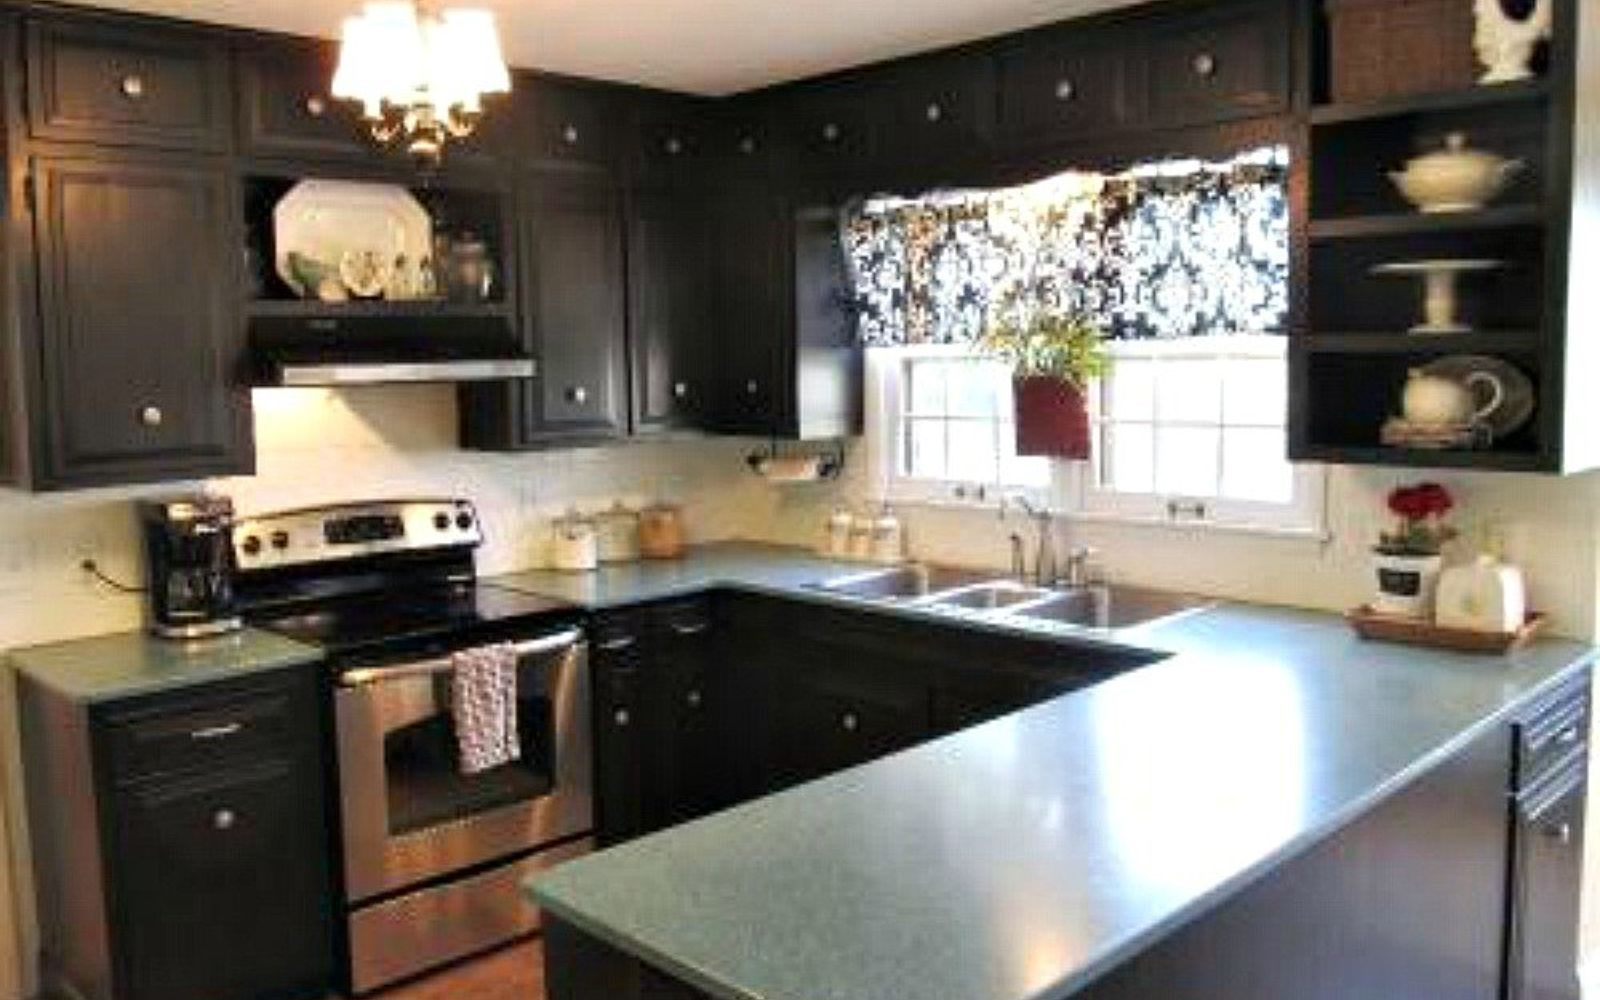 spraying kitchen cabinets white 12 reasons not to paint your kitchen cabinets white hometalk 26535